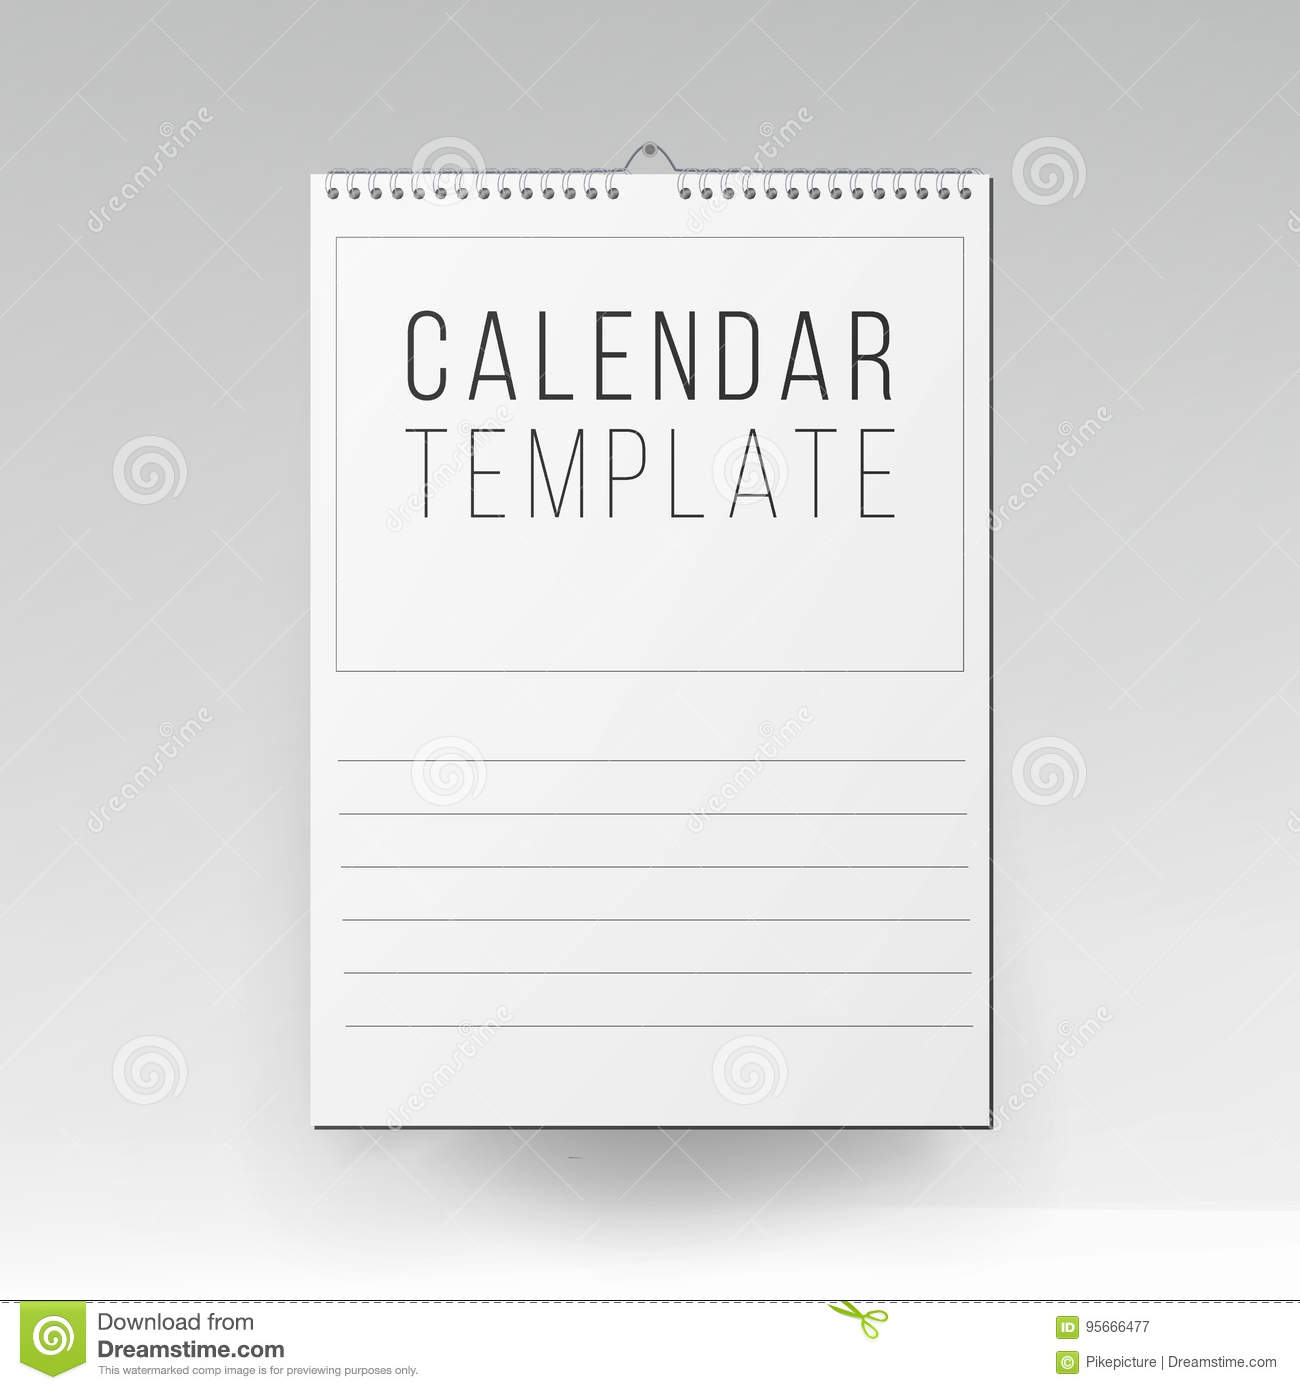 Calendar Template Vector Realistic Calendar Blank Hanging On A Wall